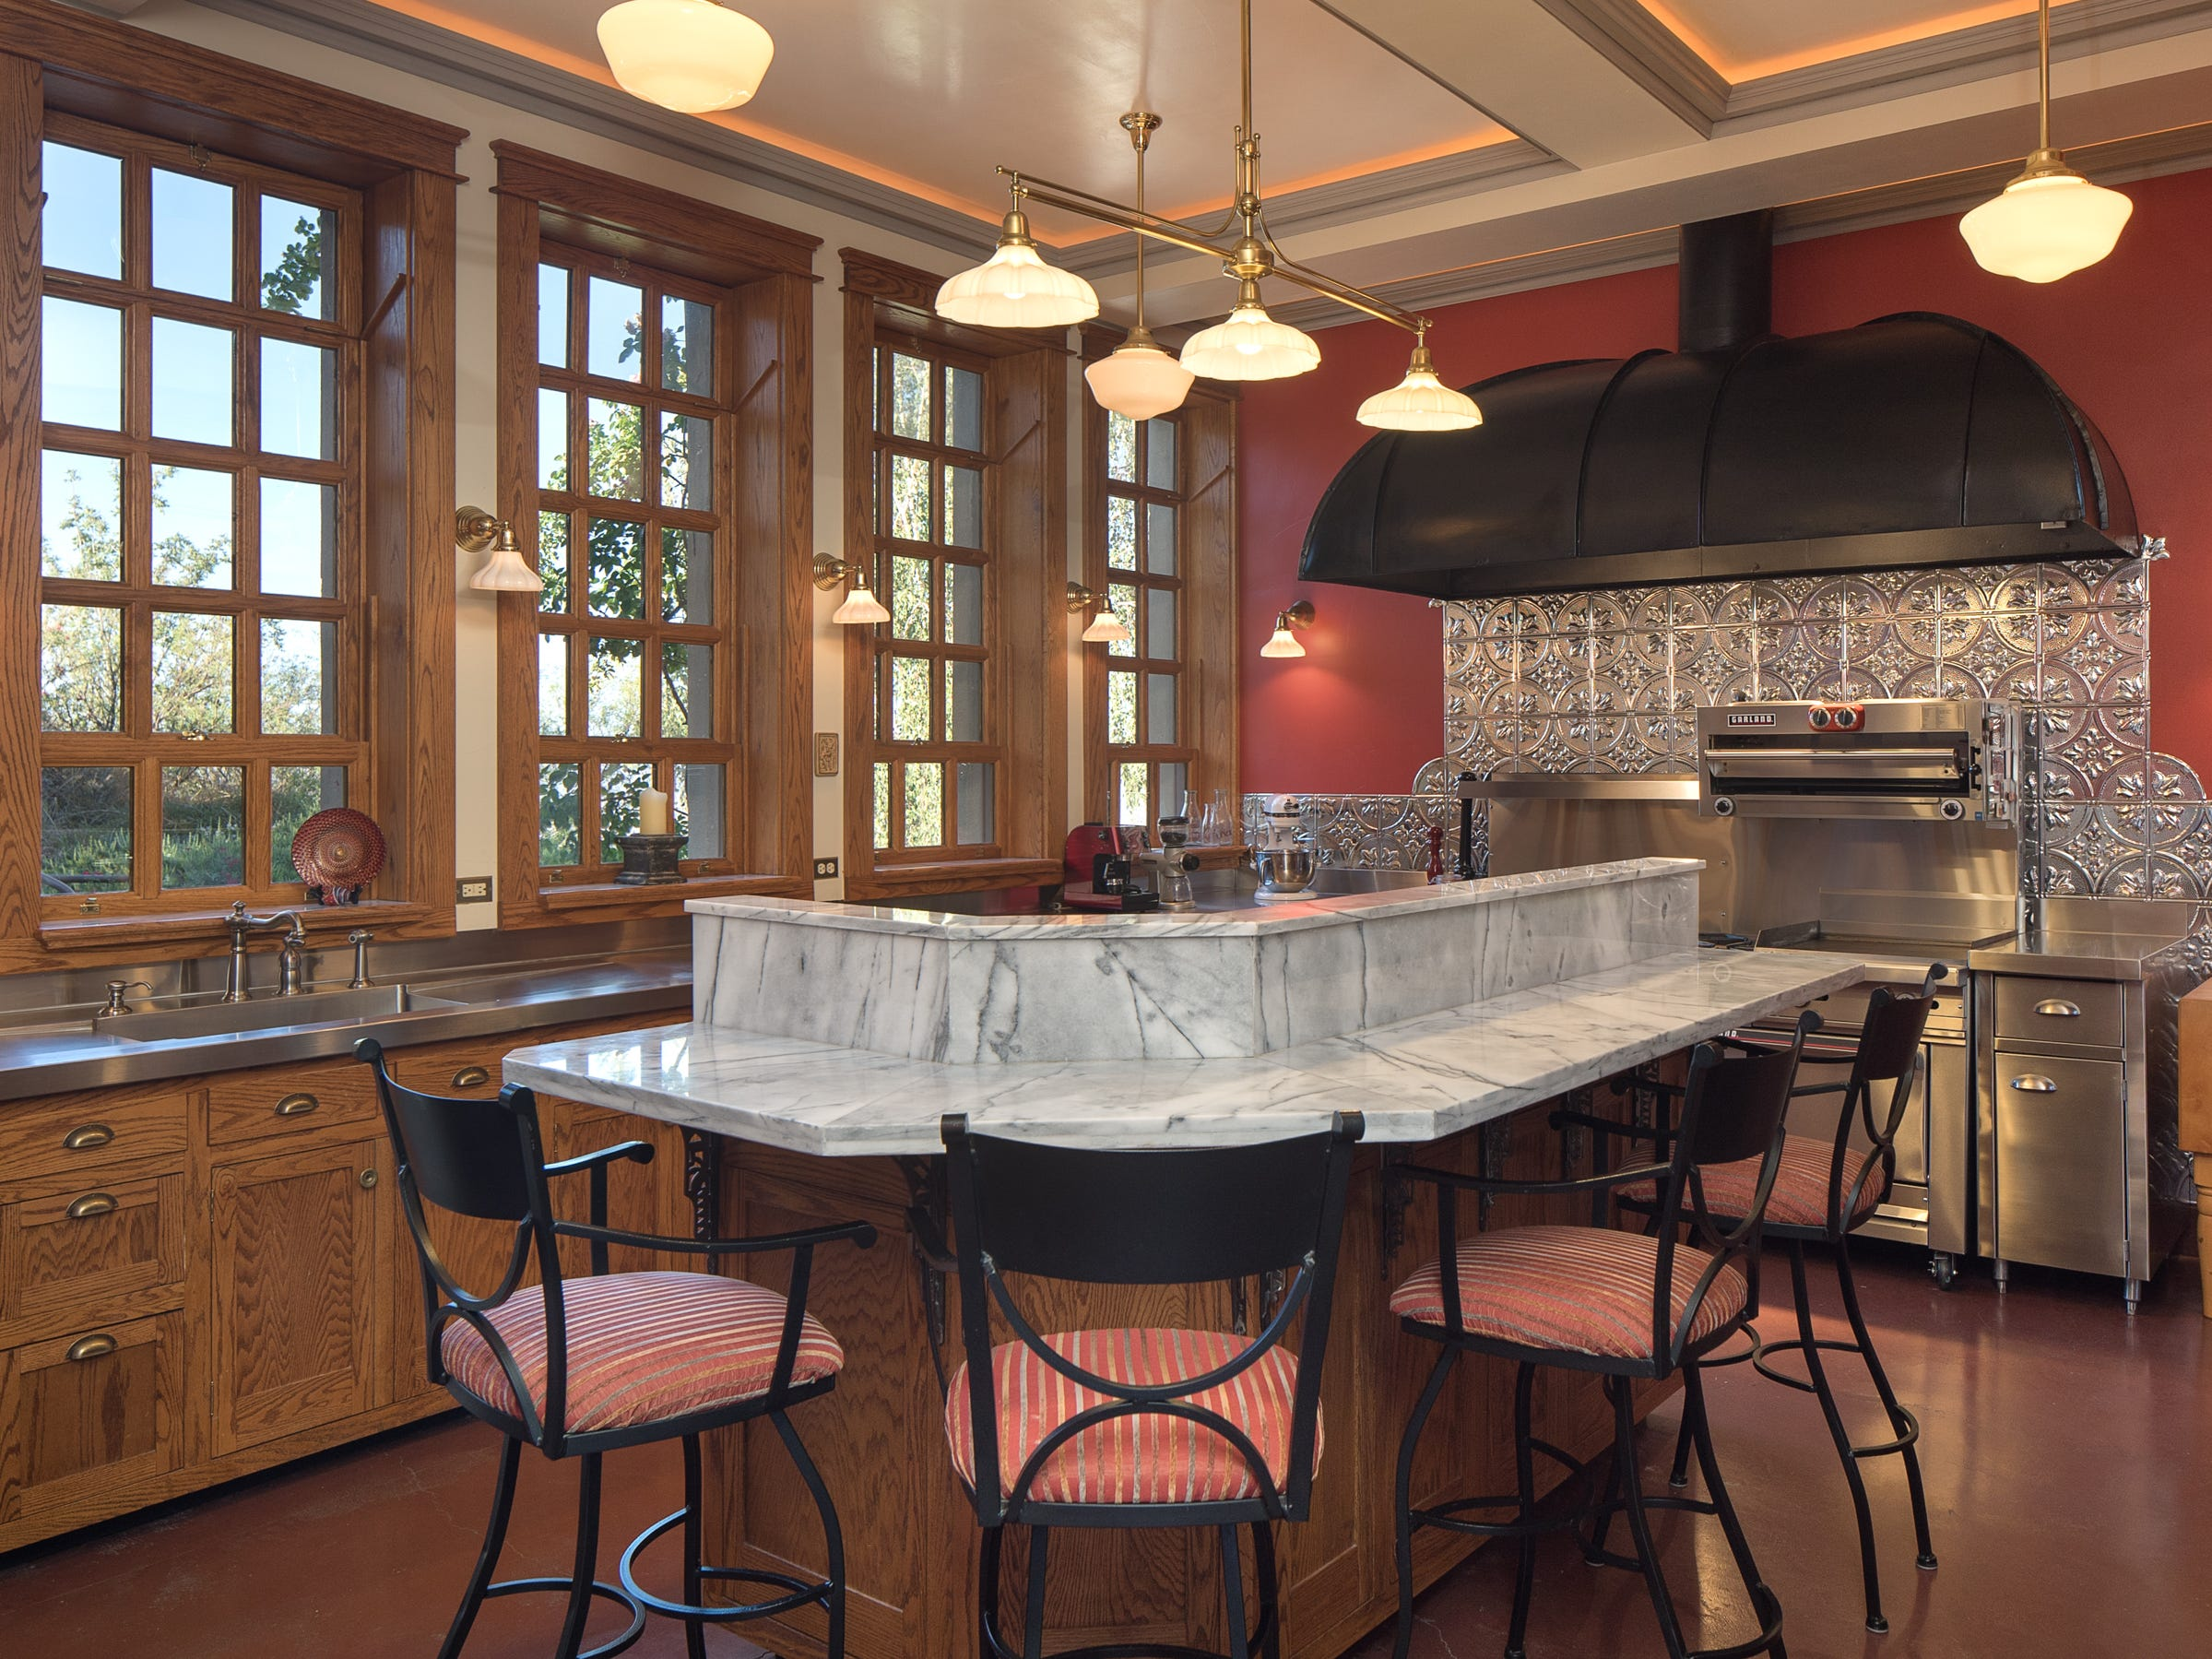 The kitchen is seen in the 100-year-old former Little Daisy Hotel in Jerome, which was later turned into a single-family home and is now on the market.